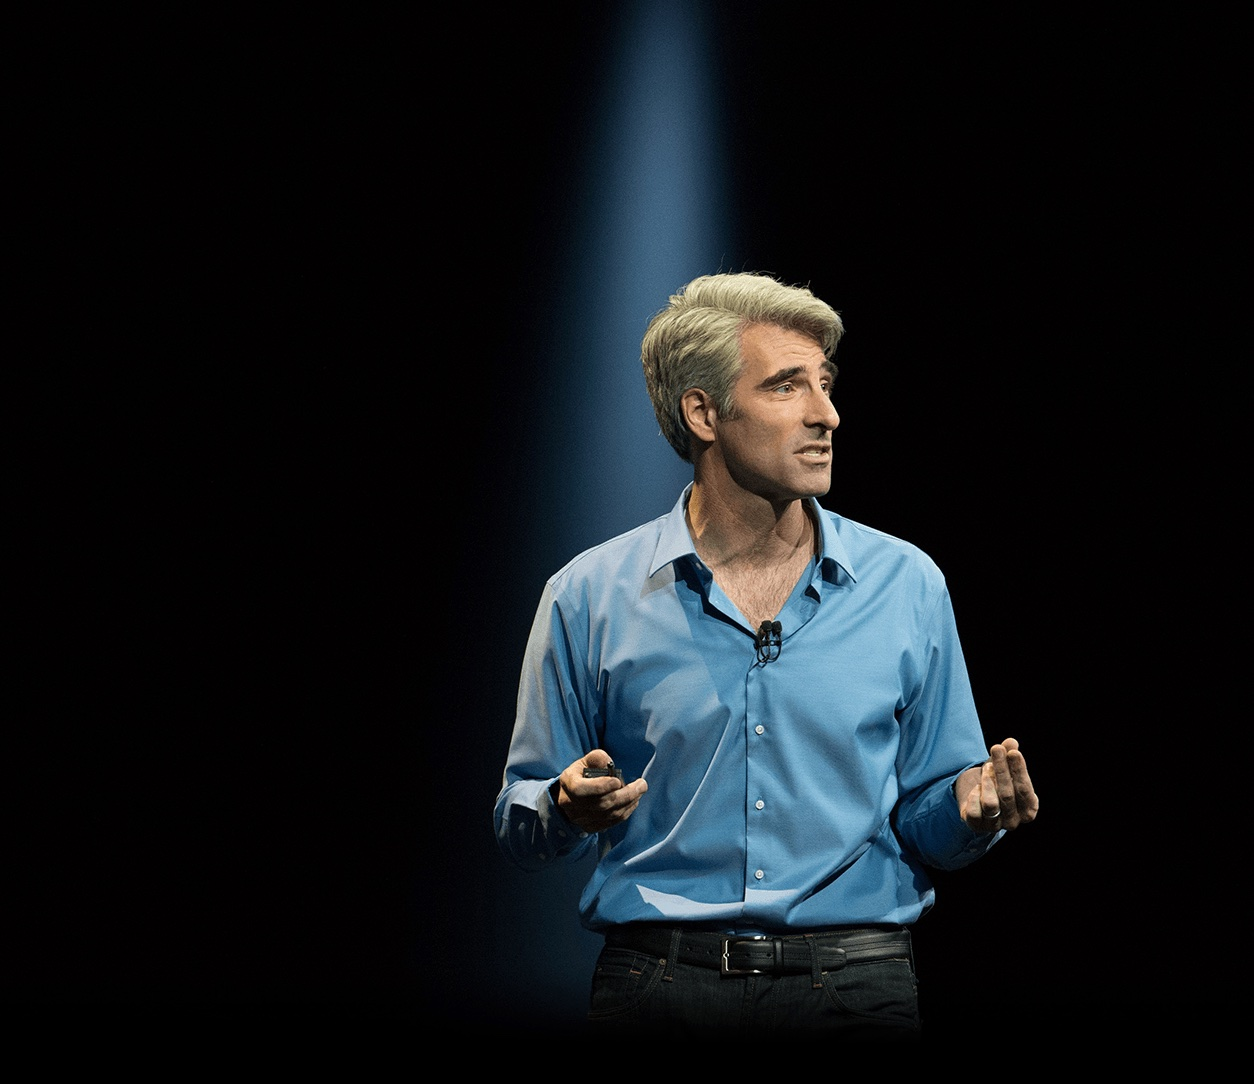 Apple S Craig Federighi Creating Iphone Backdoor Would Be A Serious Mistake